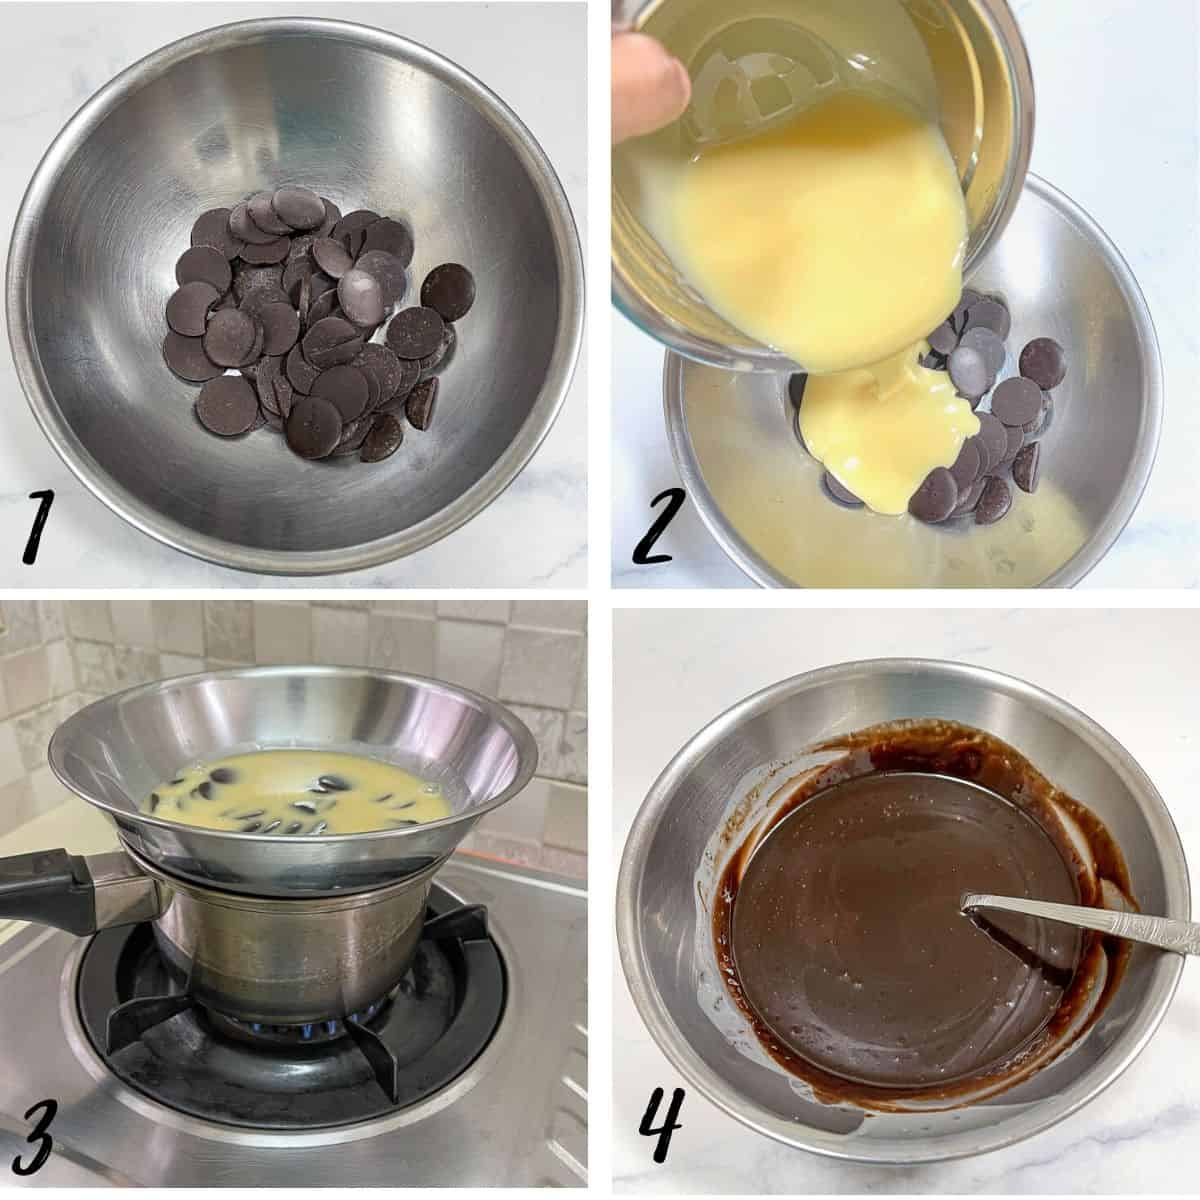 A poster of 4 images showing how to double boil chocolate and condensed milk